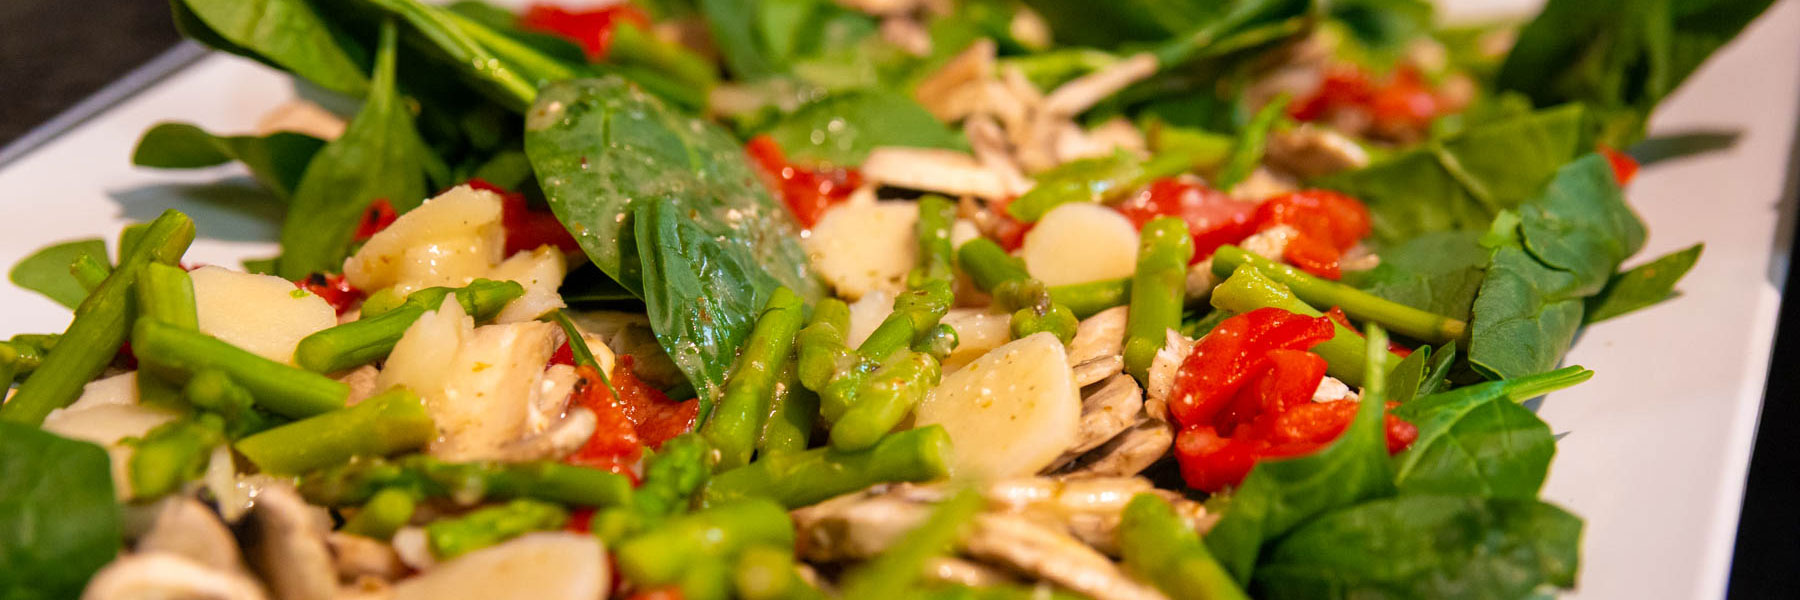 close up photo showing a spinach salad with water chestnuts, asparagus, tomatoes, and dressing